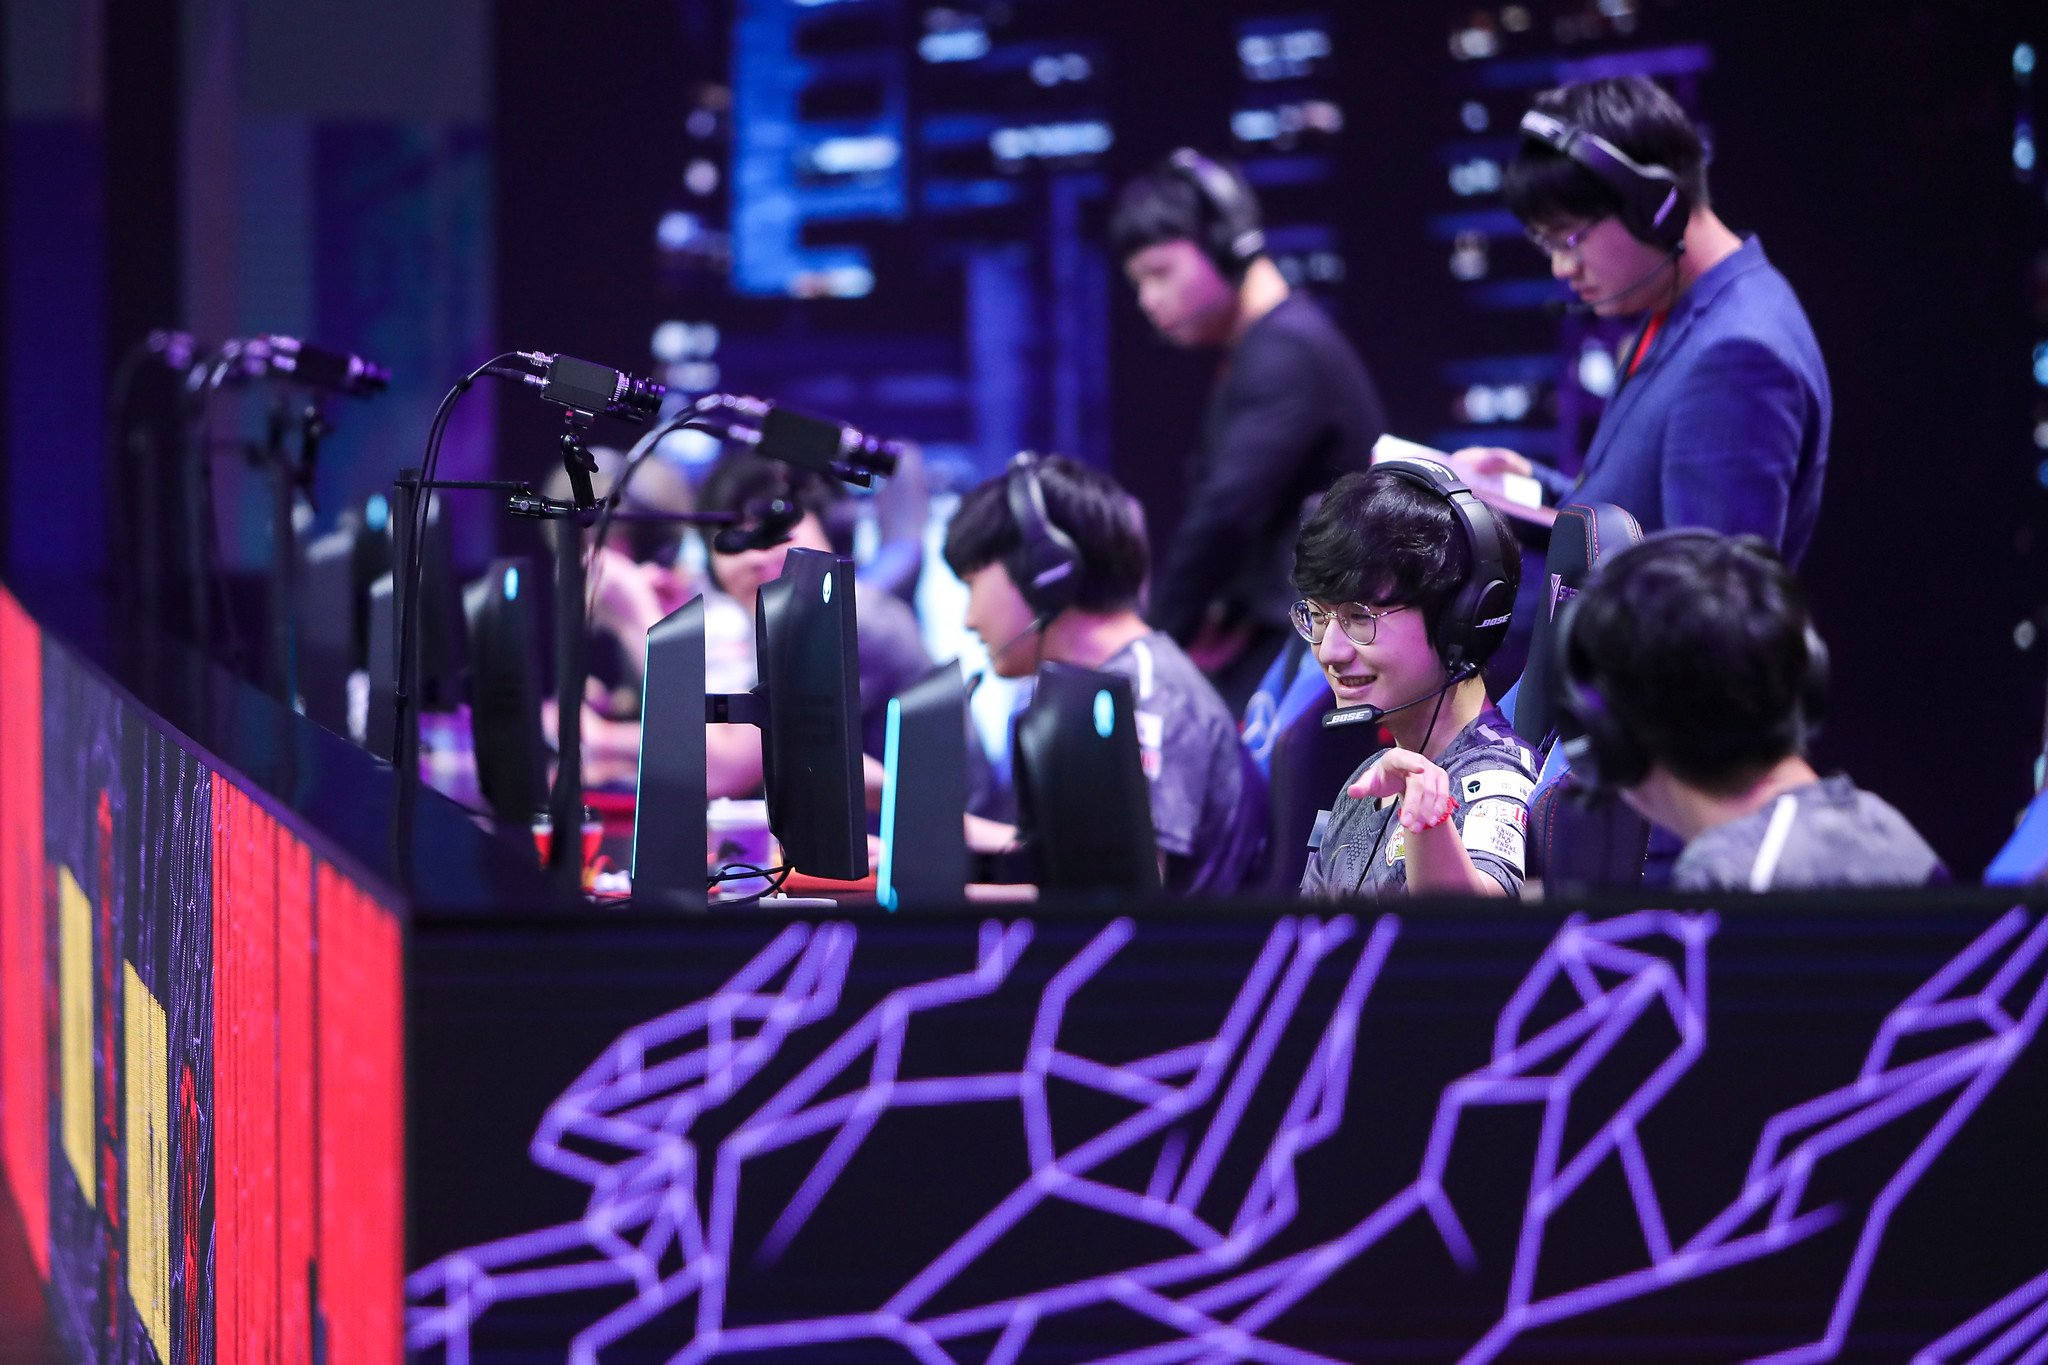 League Of Legends World Championship 2020 Main Group Event Day Two: LGD Gaming Vs Fnatic